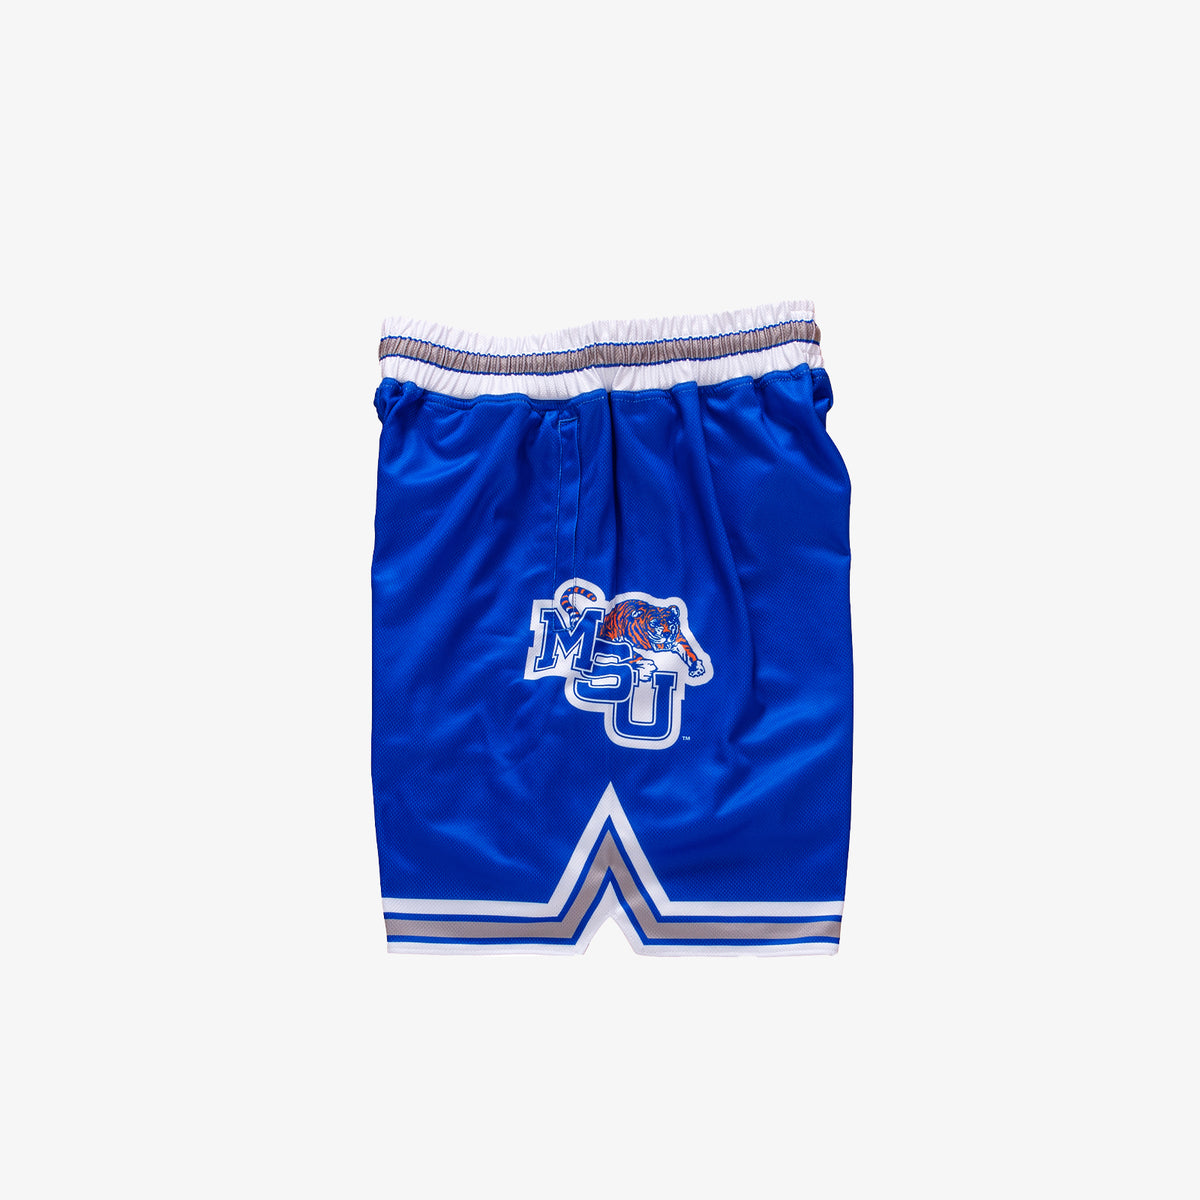 Memphis State 1991-1992 Retro College Basketball Shorts - Blue